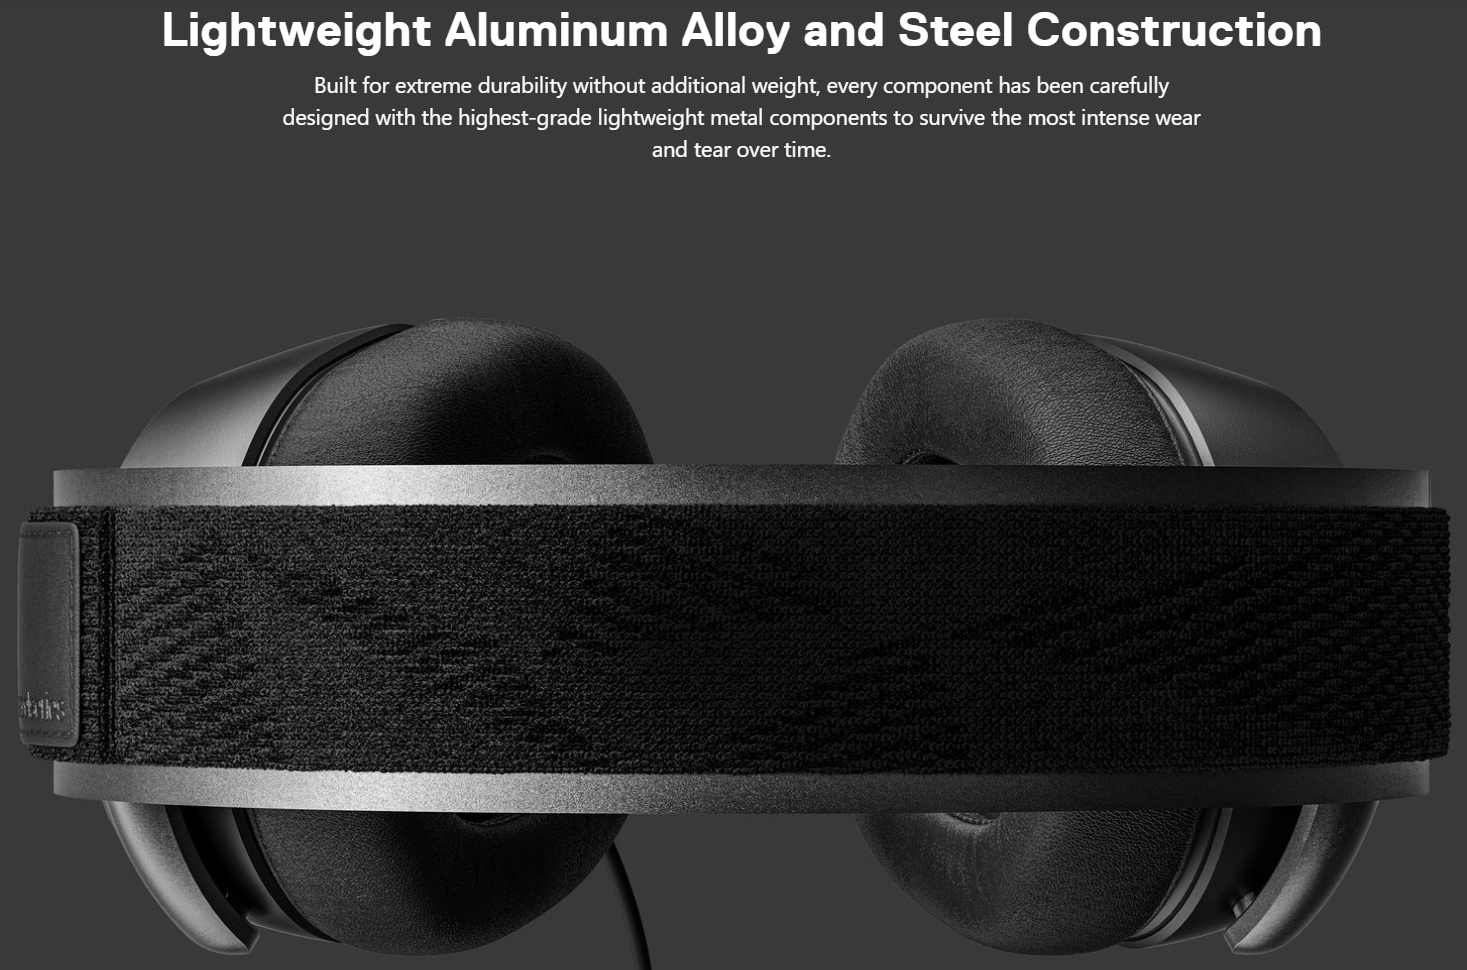 SteelSeries Arctis Prime - Lightweight Aluminum Alloy and Steel Construction